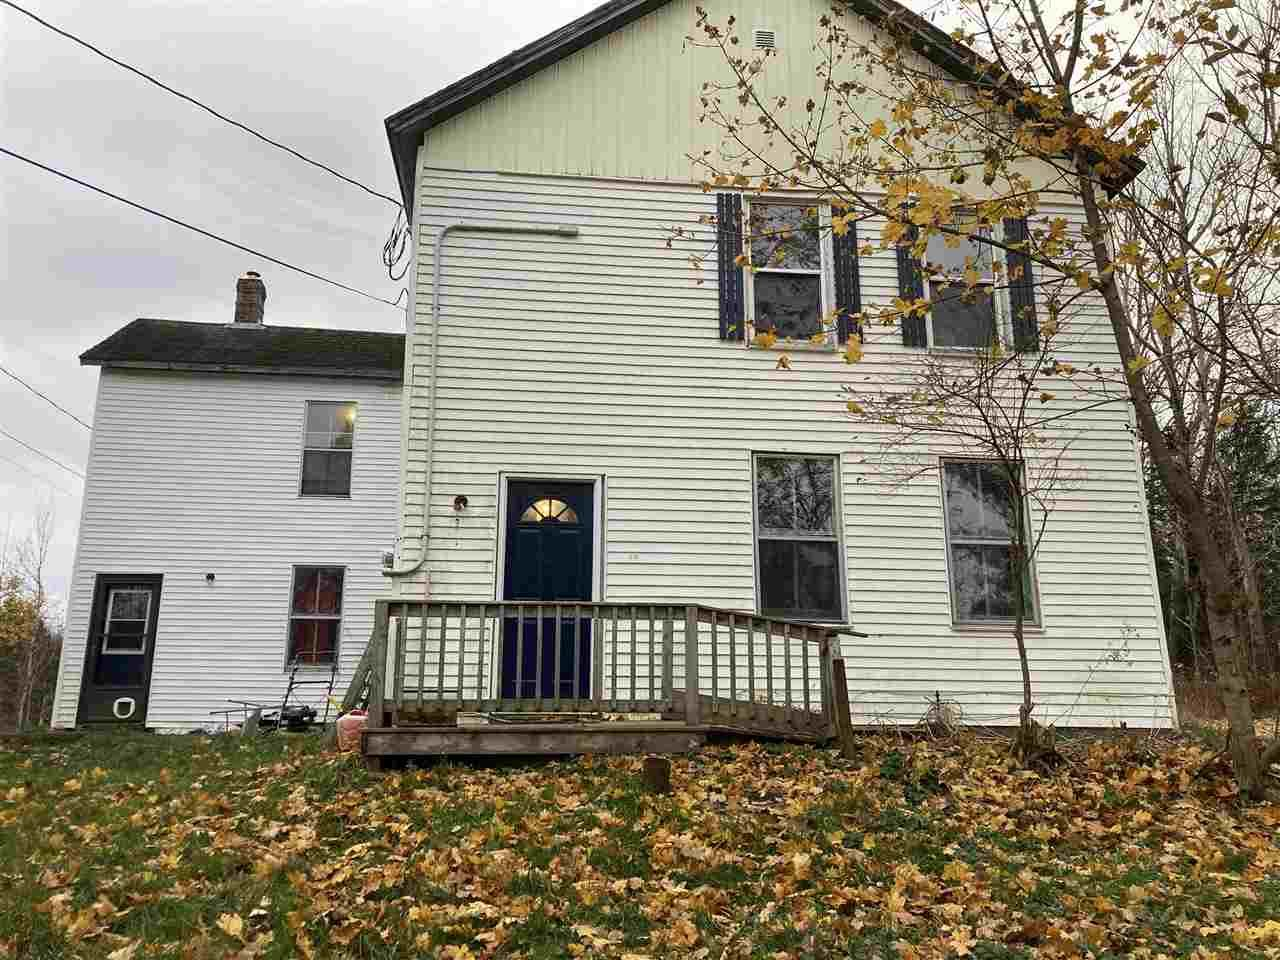 Main Photo: 407 Finlay Dan Road in Thorburn: 108-Rural Pictou County Multi-Family for sale (Northern Region)  : MLS®# 202024109